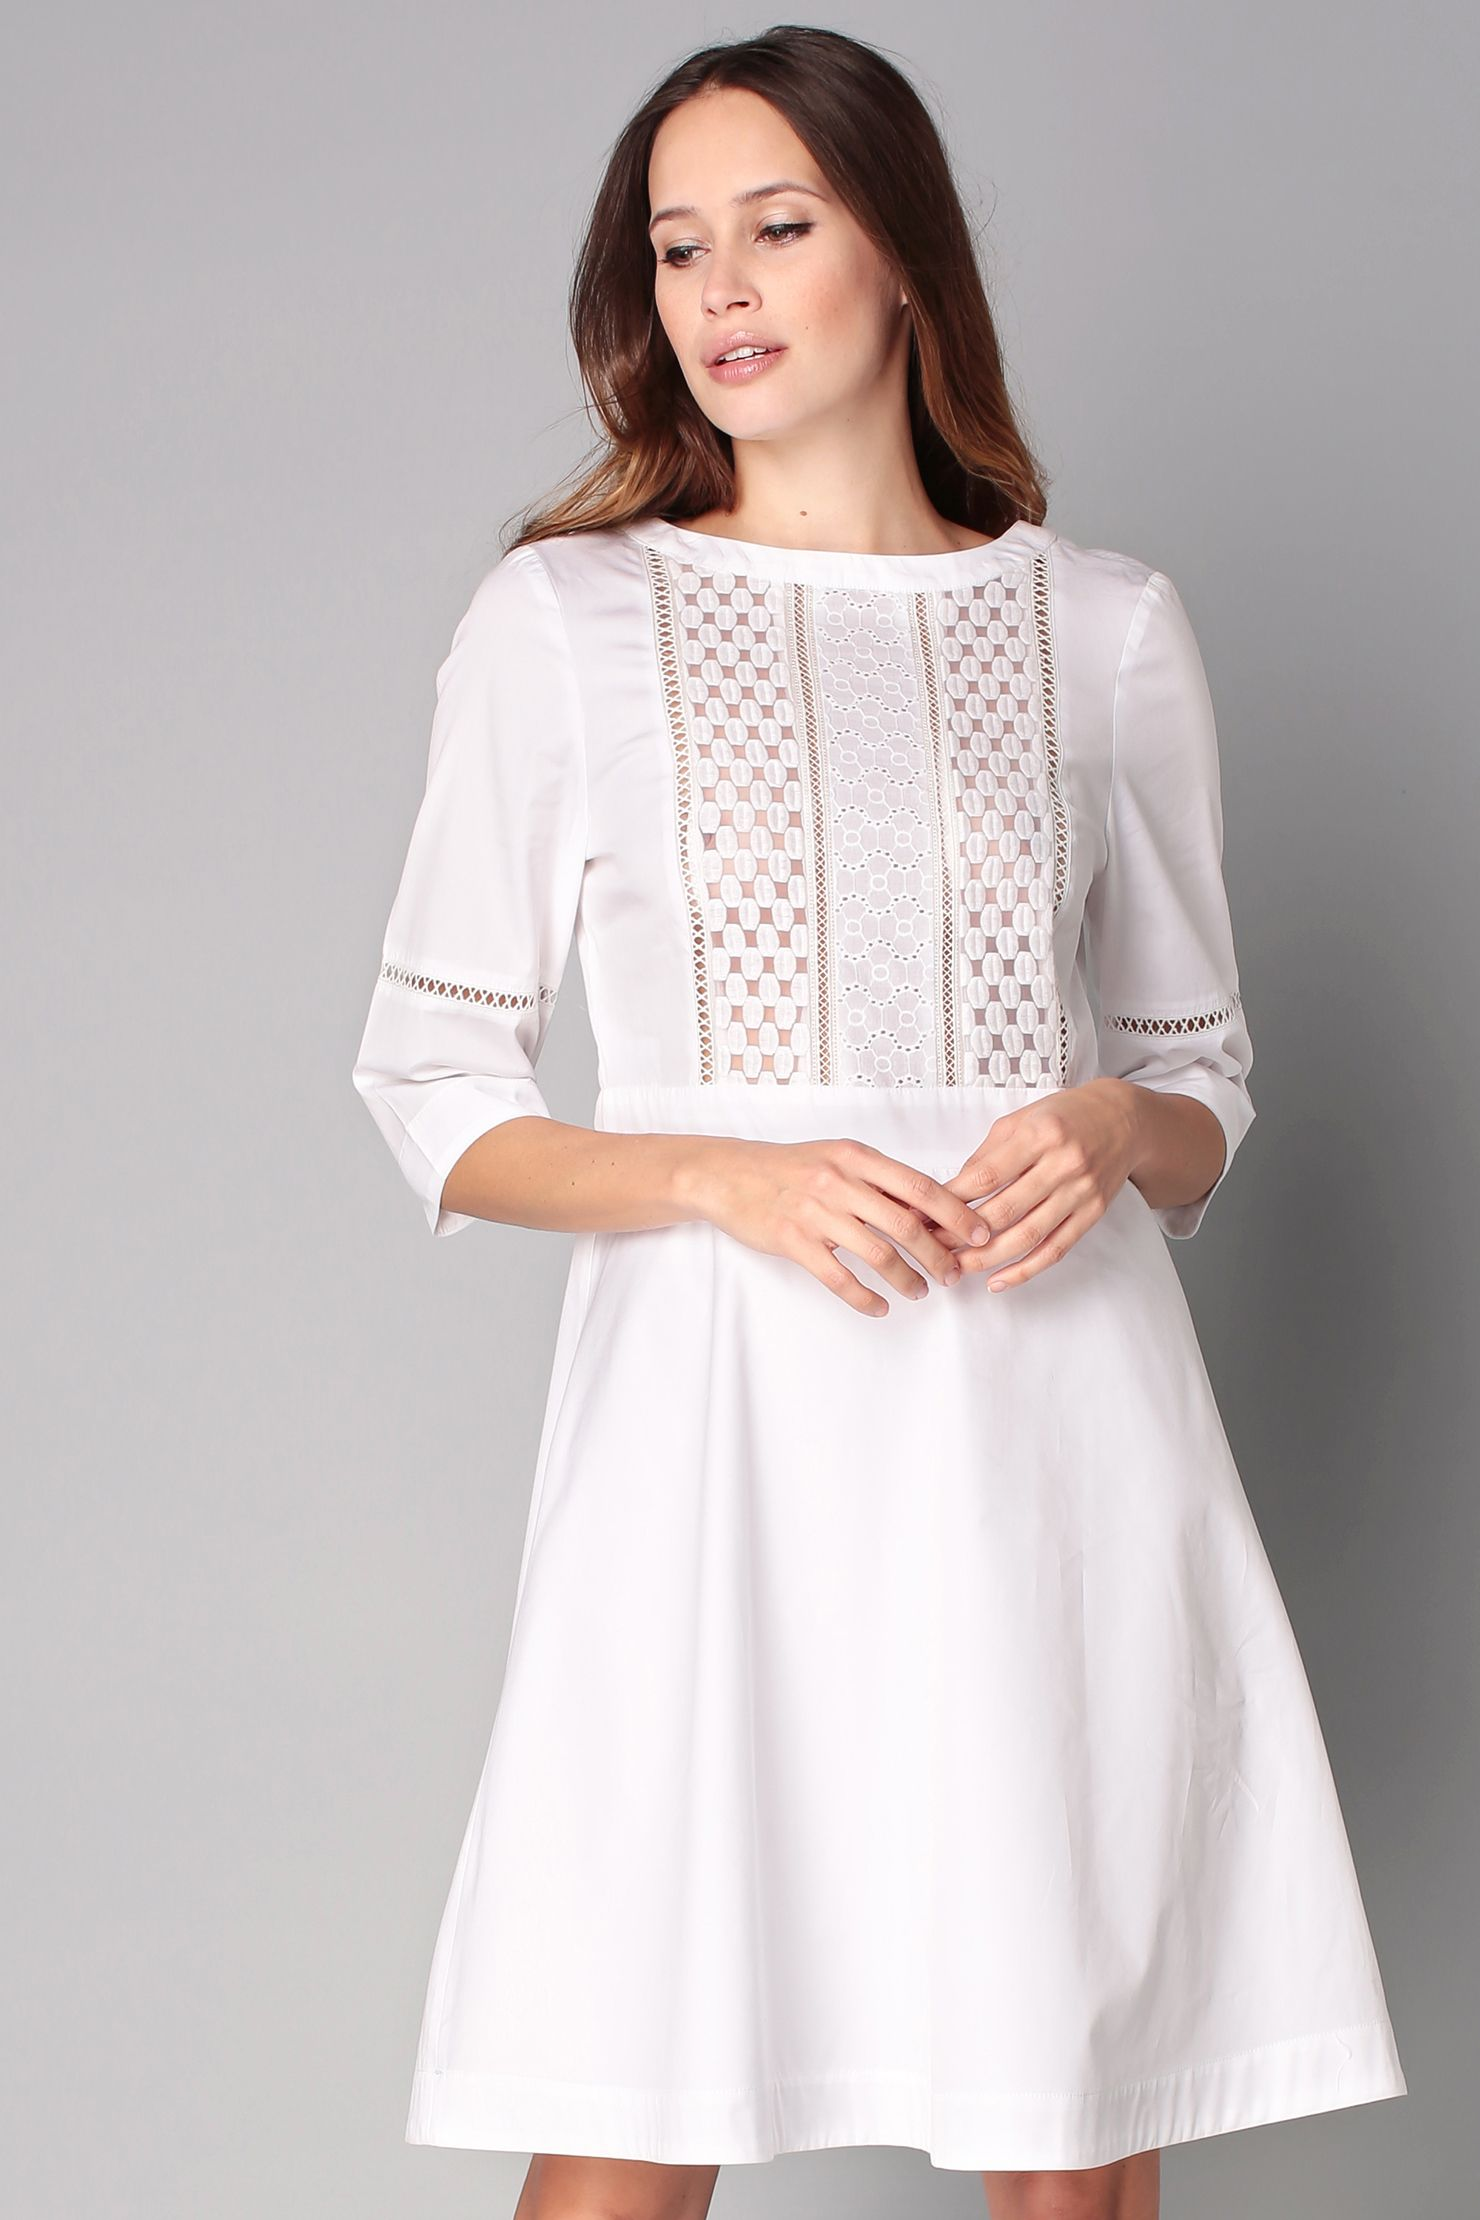 20054370aa7294 Robe blanche broderie anglaise